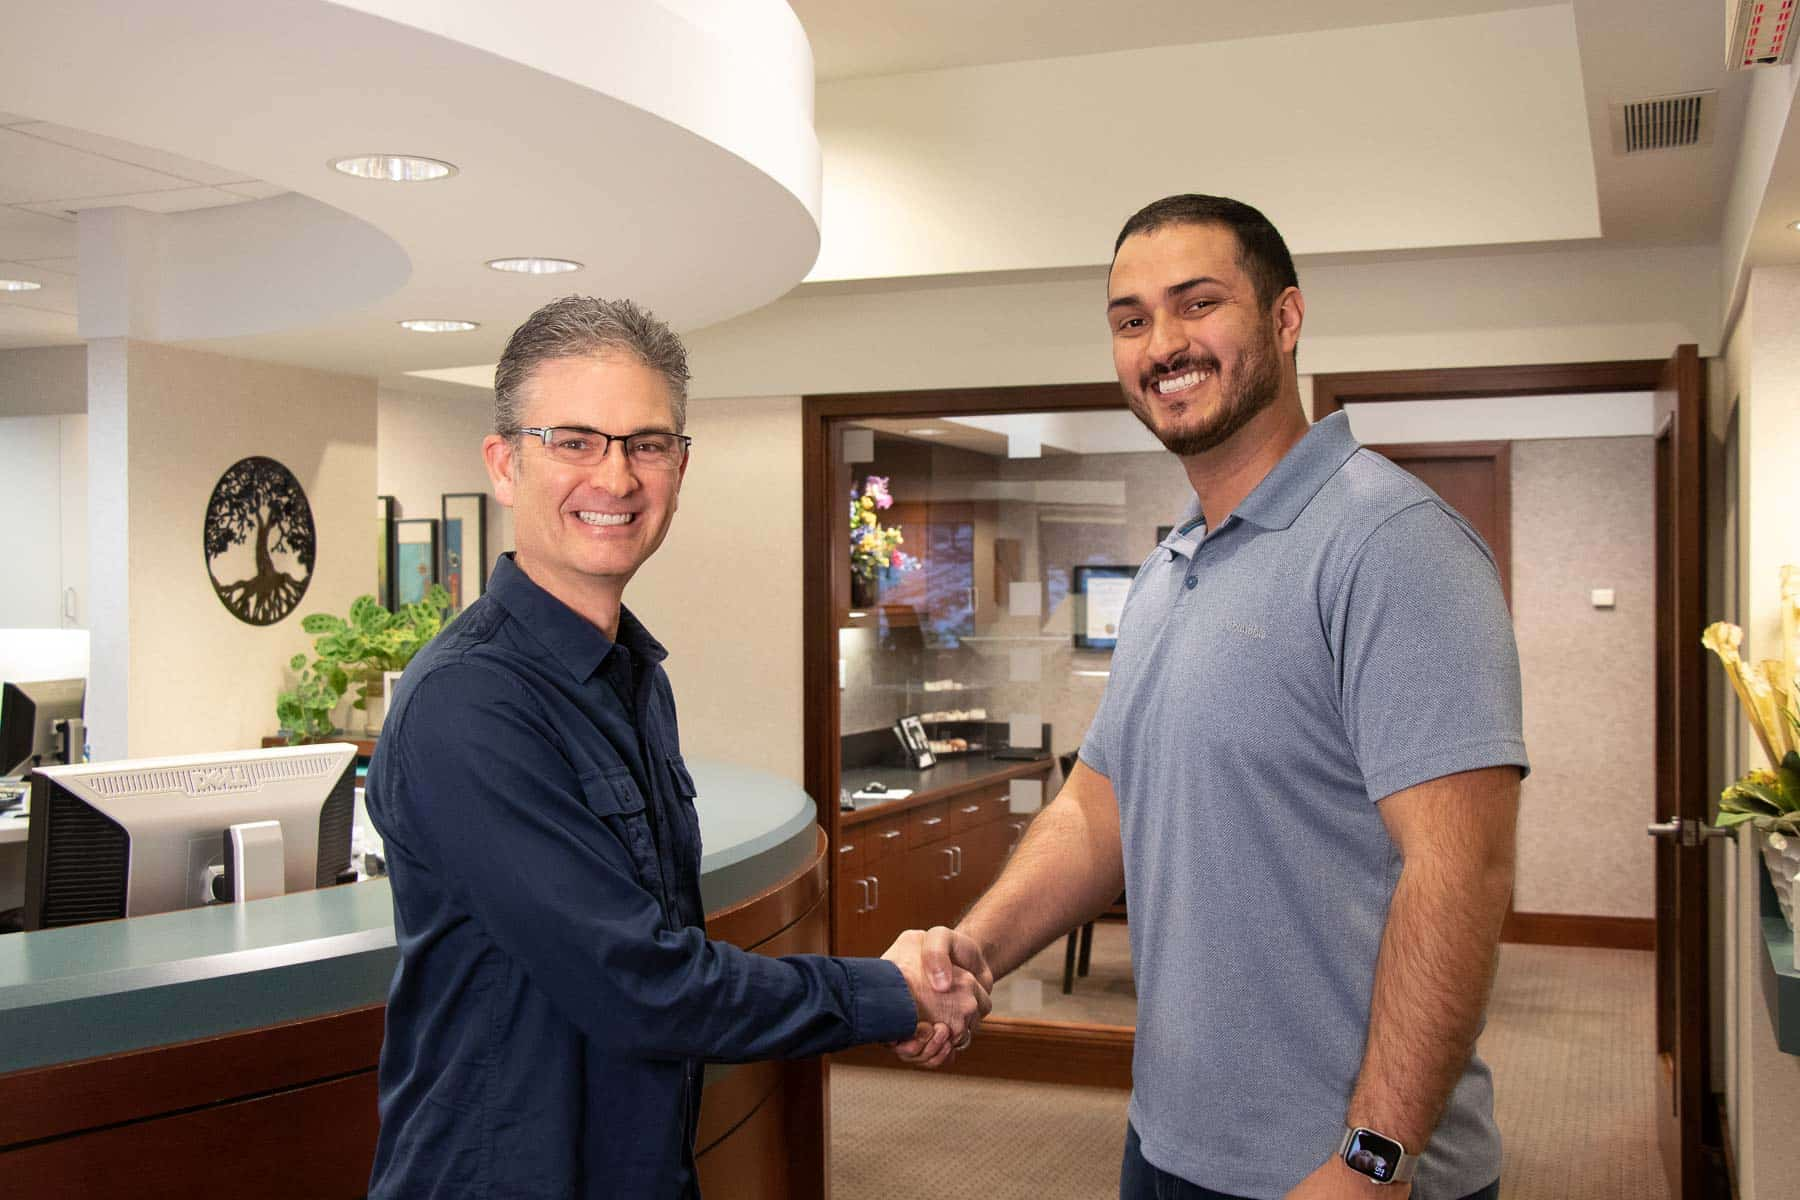 Dr. Sebastian Munoz assumes ownership of The Center for Dental Excellence